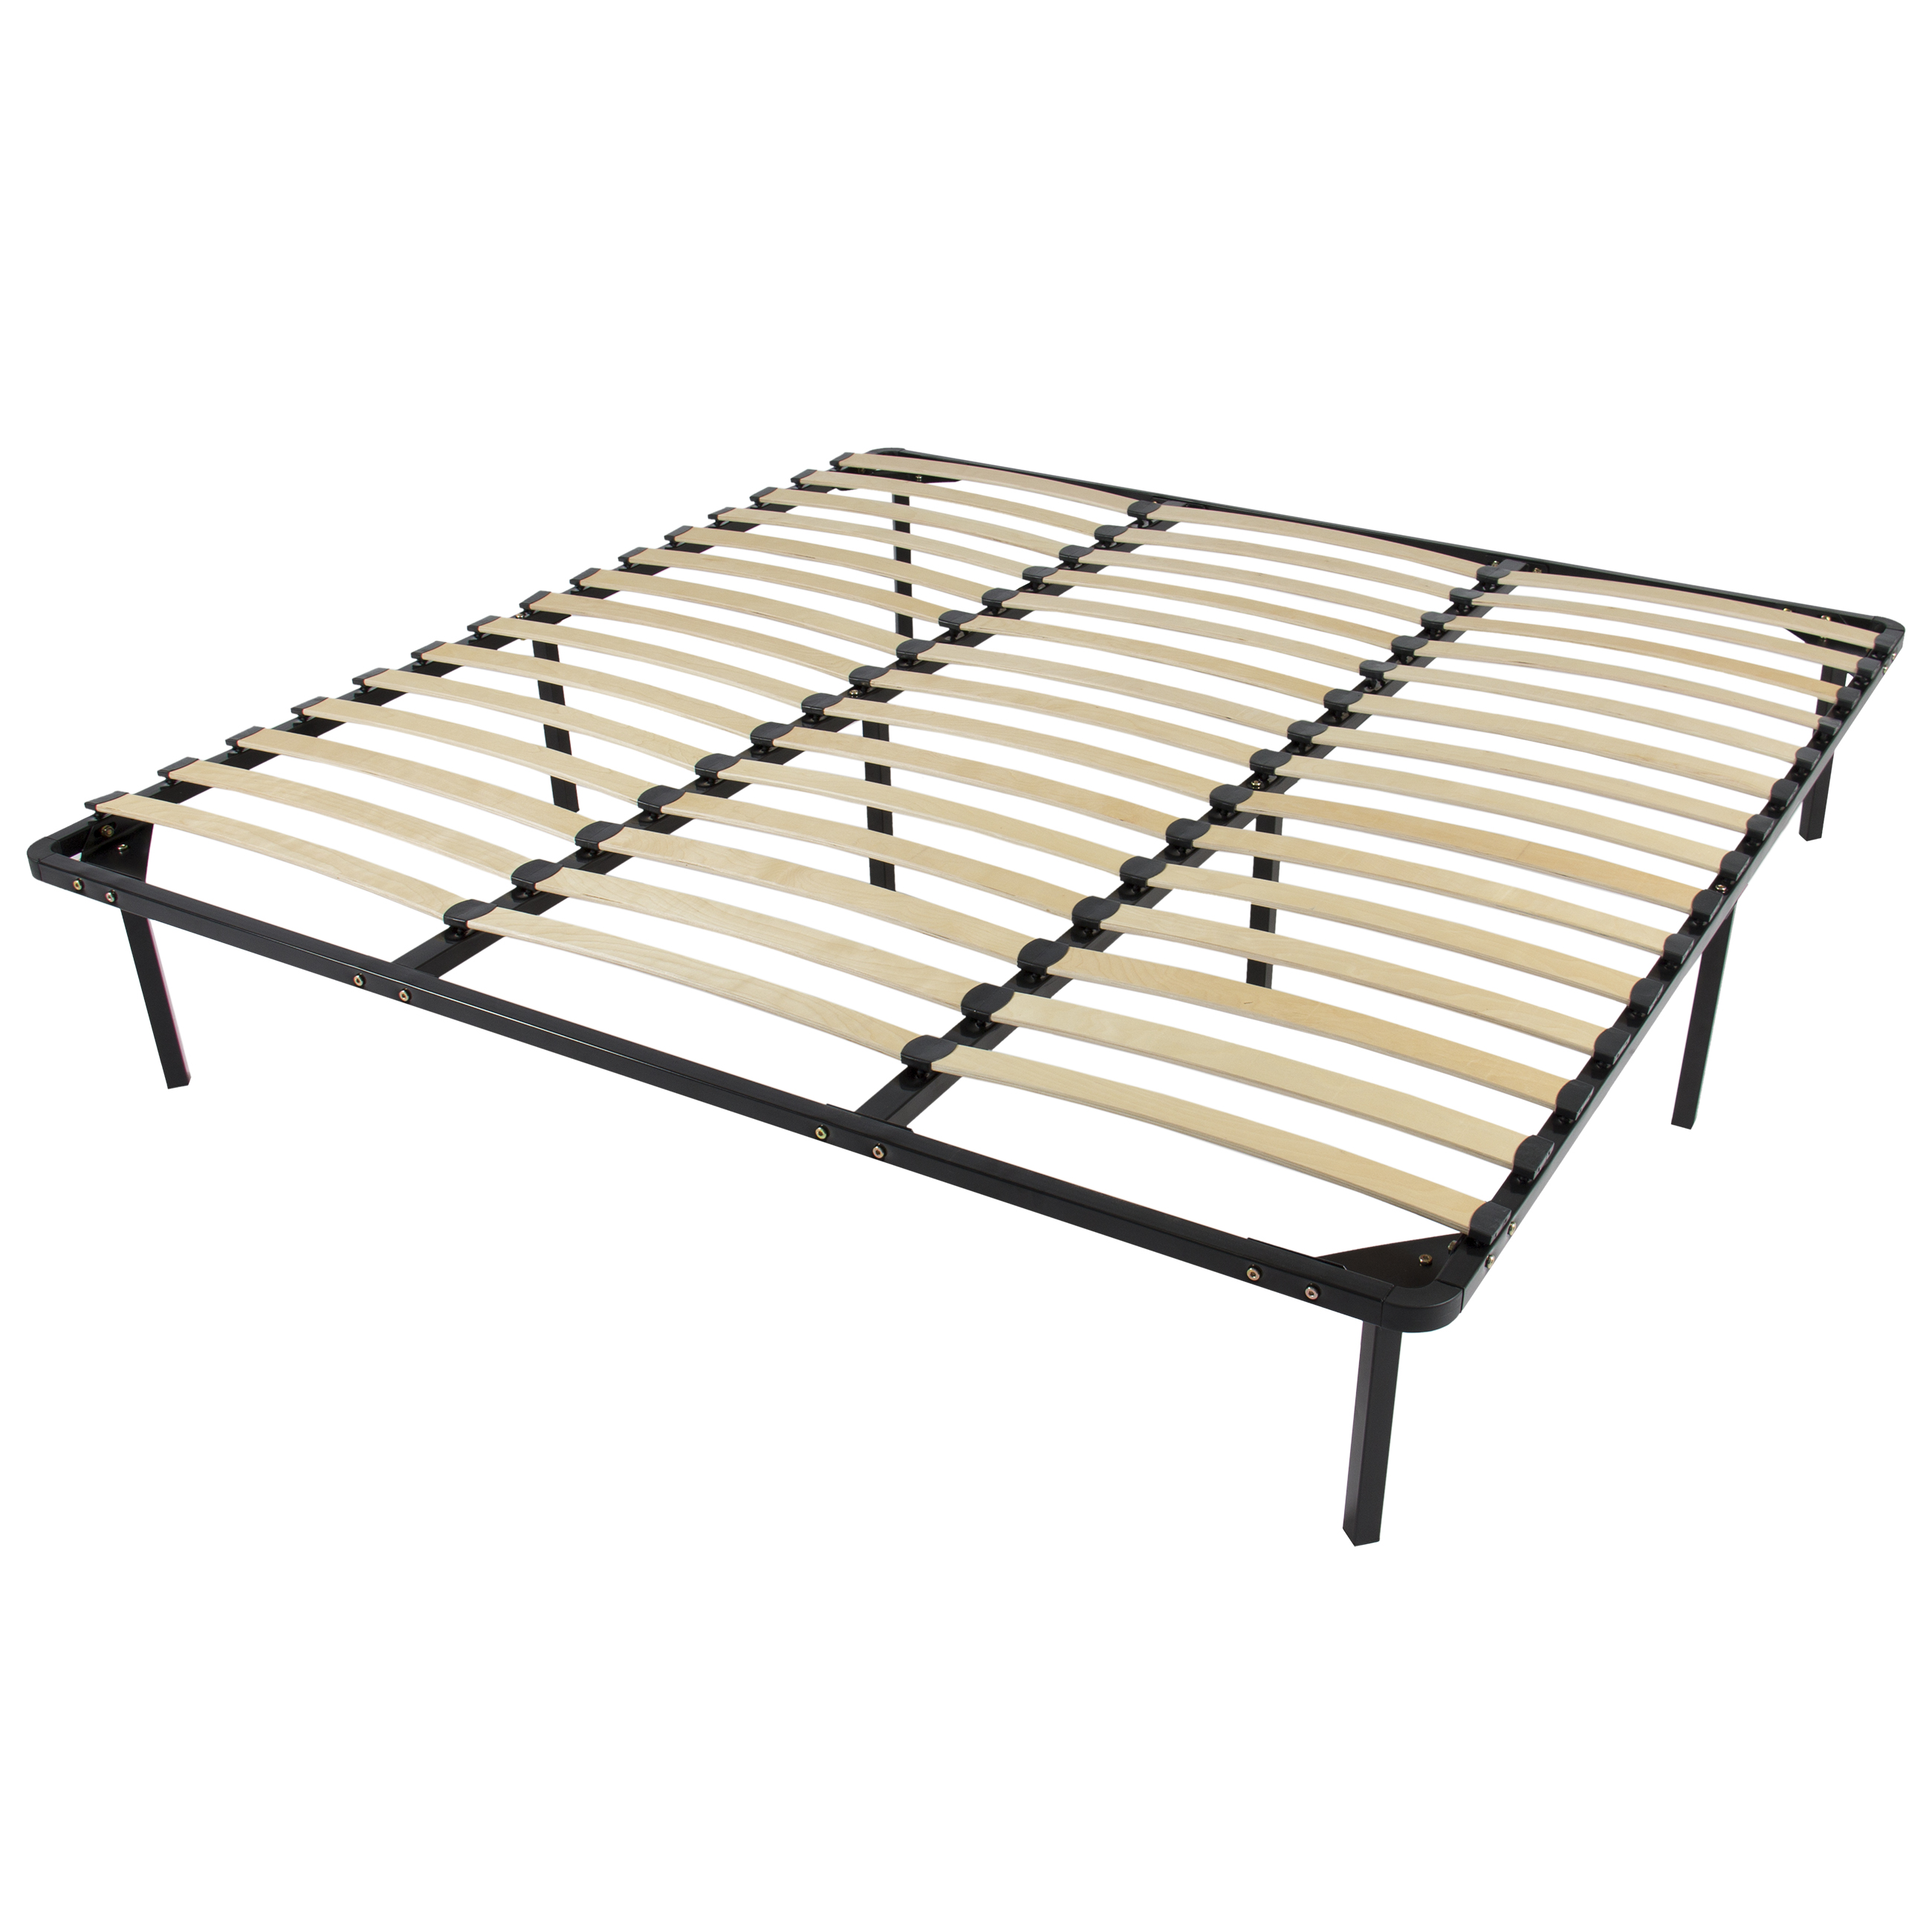 Best Choice Products Wooden Slat Metal Bed Frame Wood Slats Platform Bedroom Mattress Foundation King